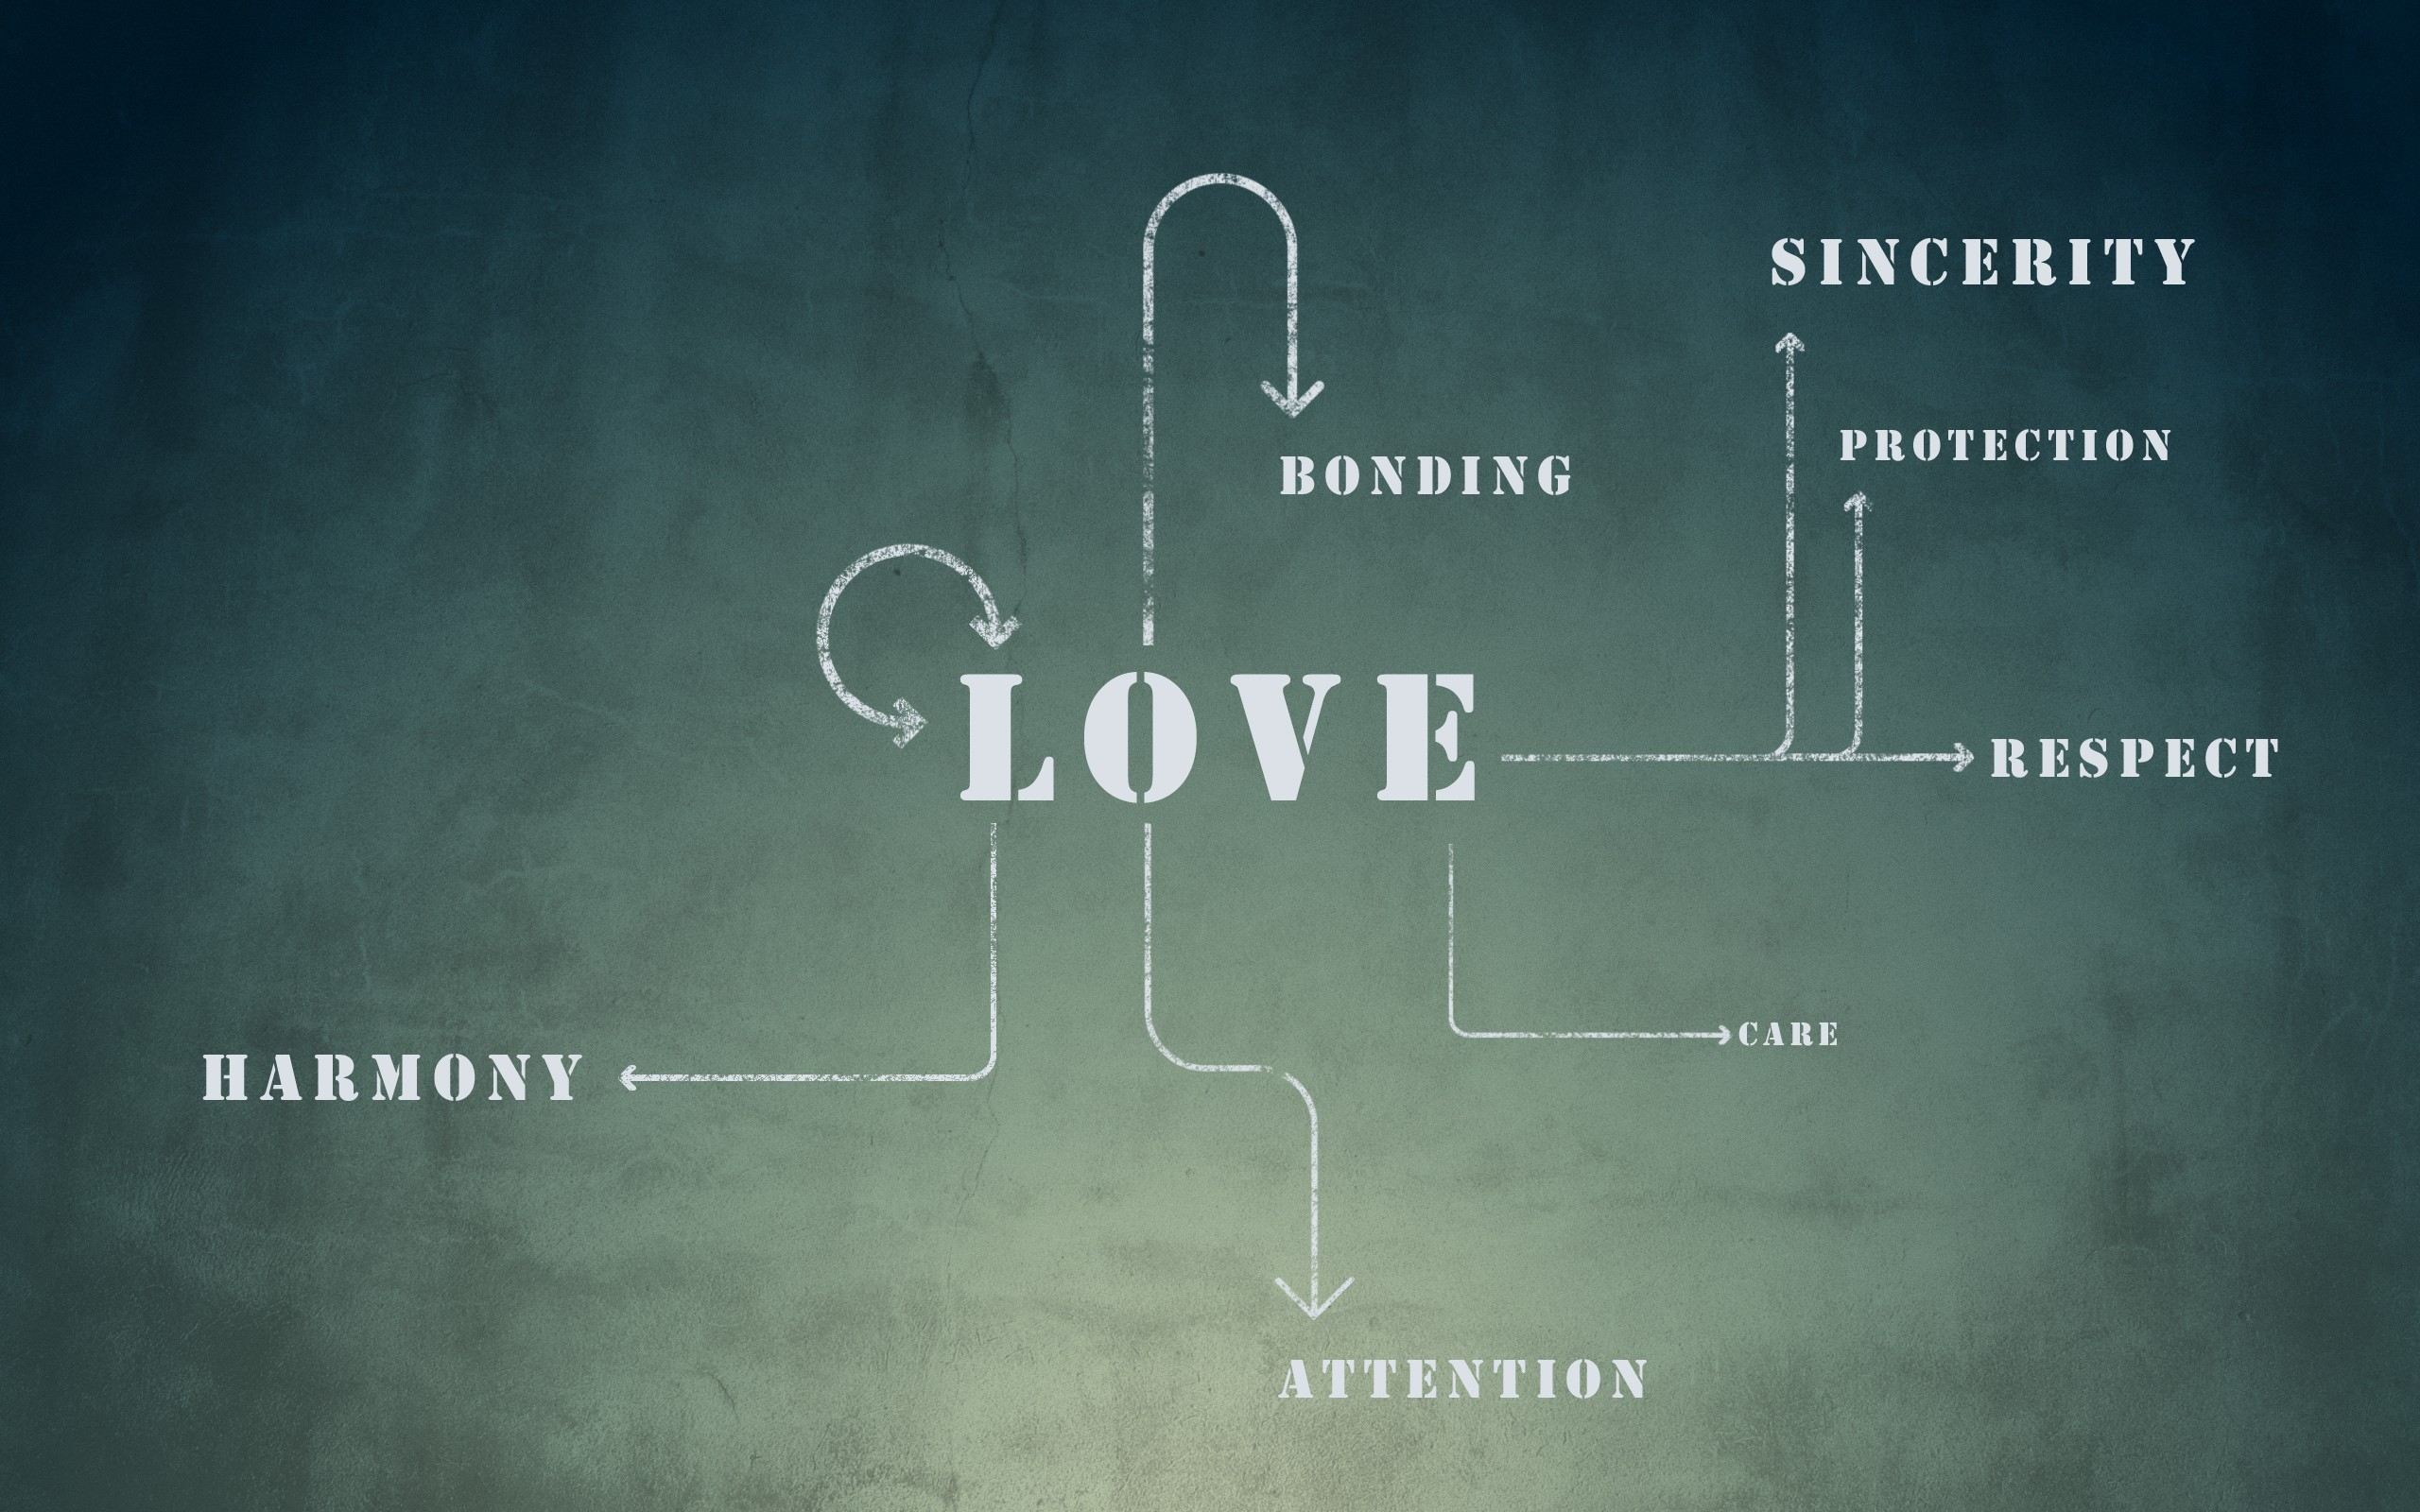 True Love Hd Wallpapers With Quotes : 20 HD Typography Wallpapers